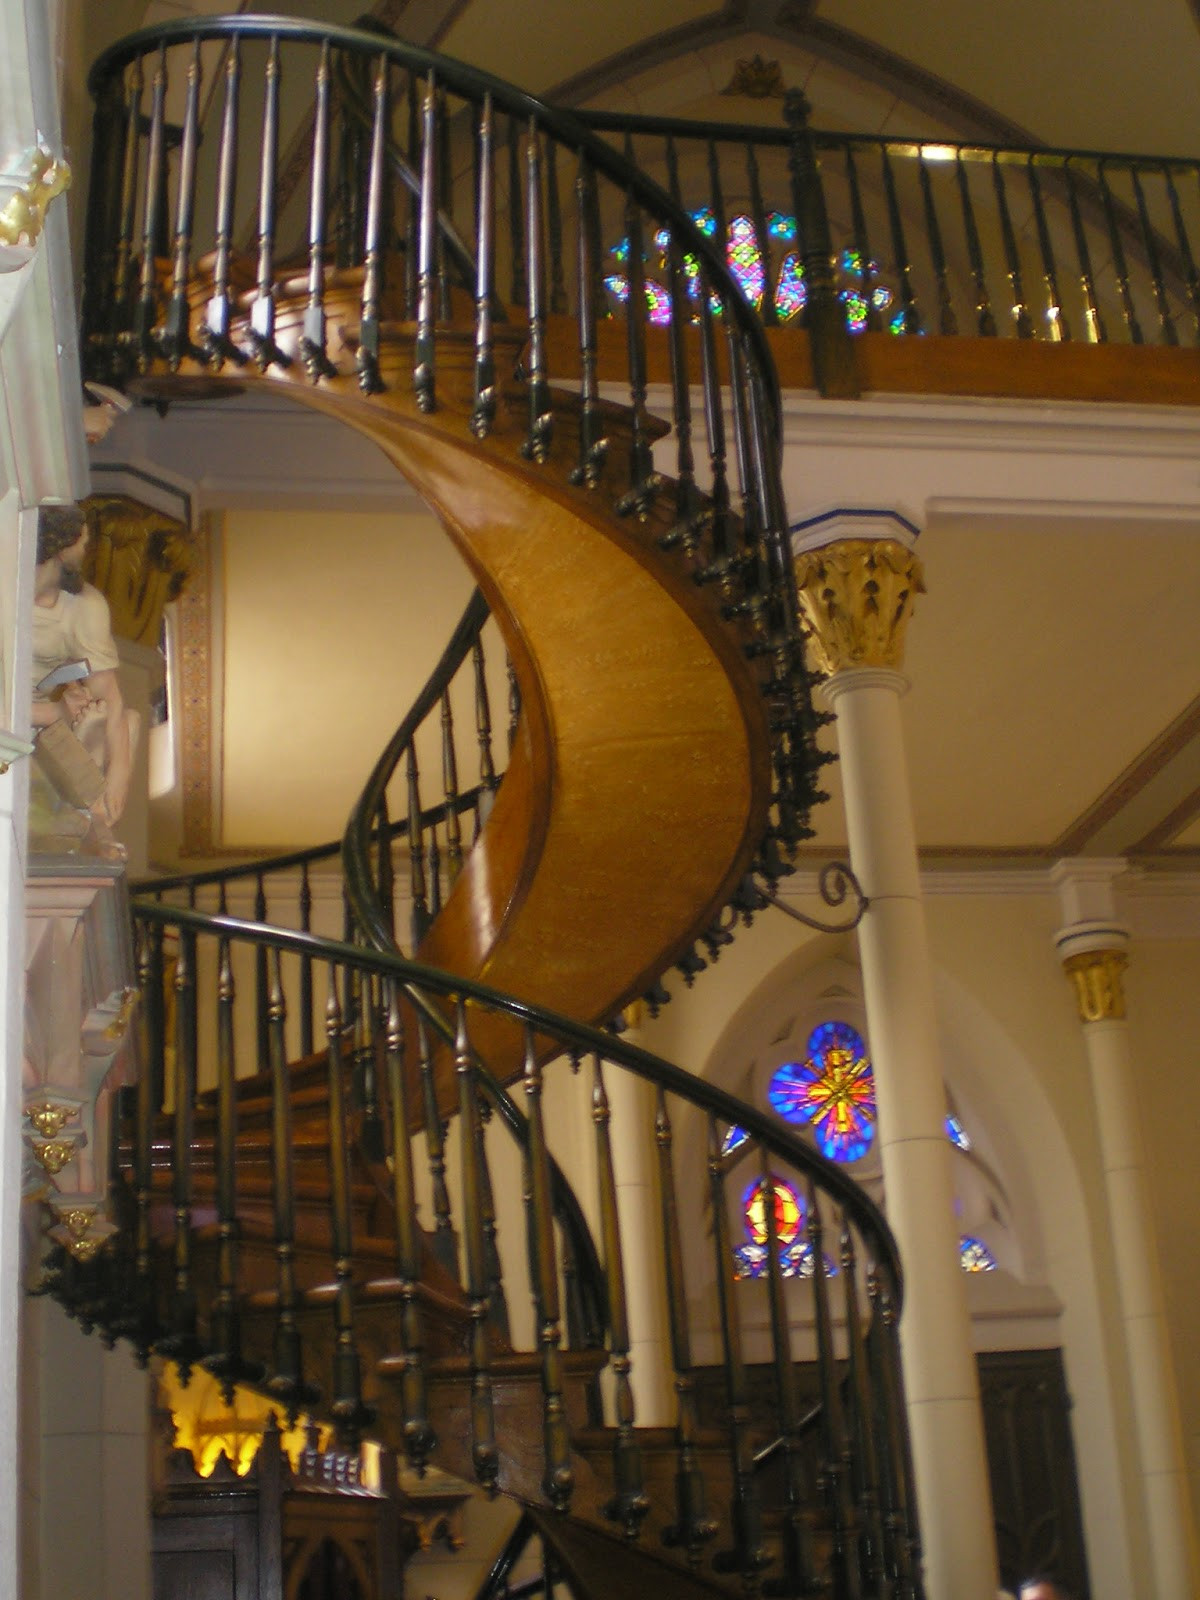 Best ideas about Loretto Chapel Staircase Explained . Save or Pin Sponge Full of Thoughts Another Pilgrimage Now.